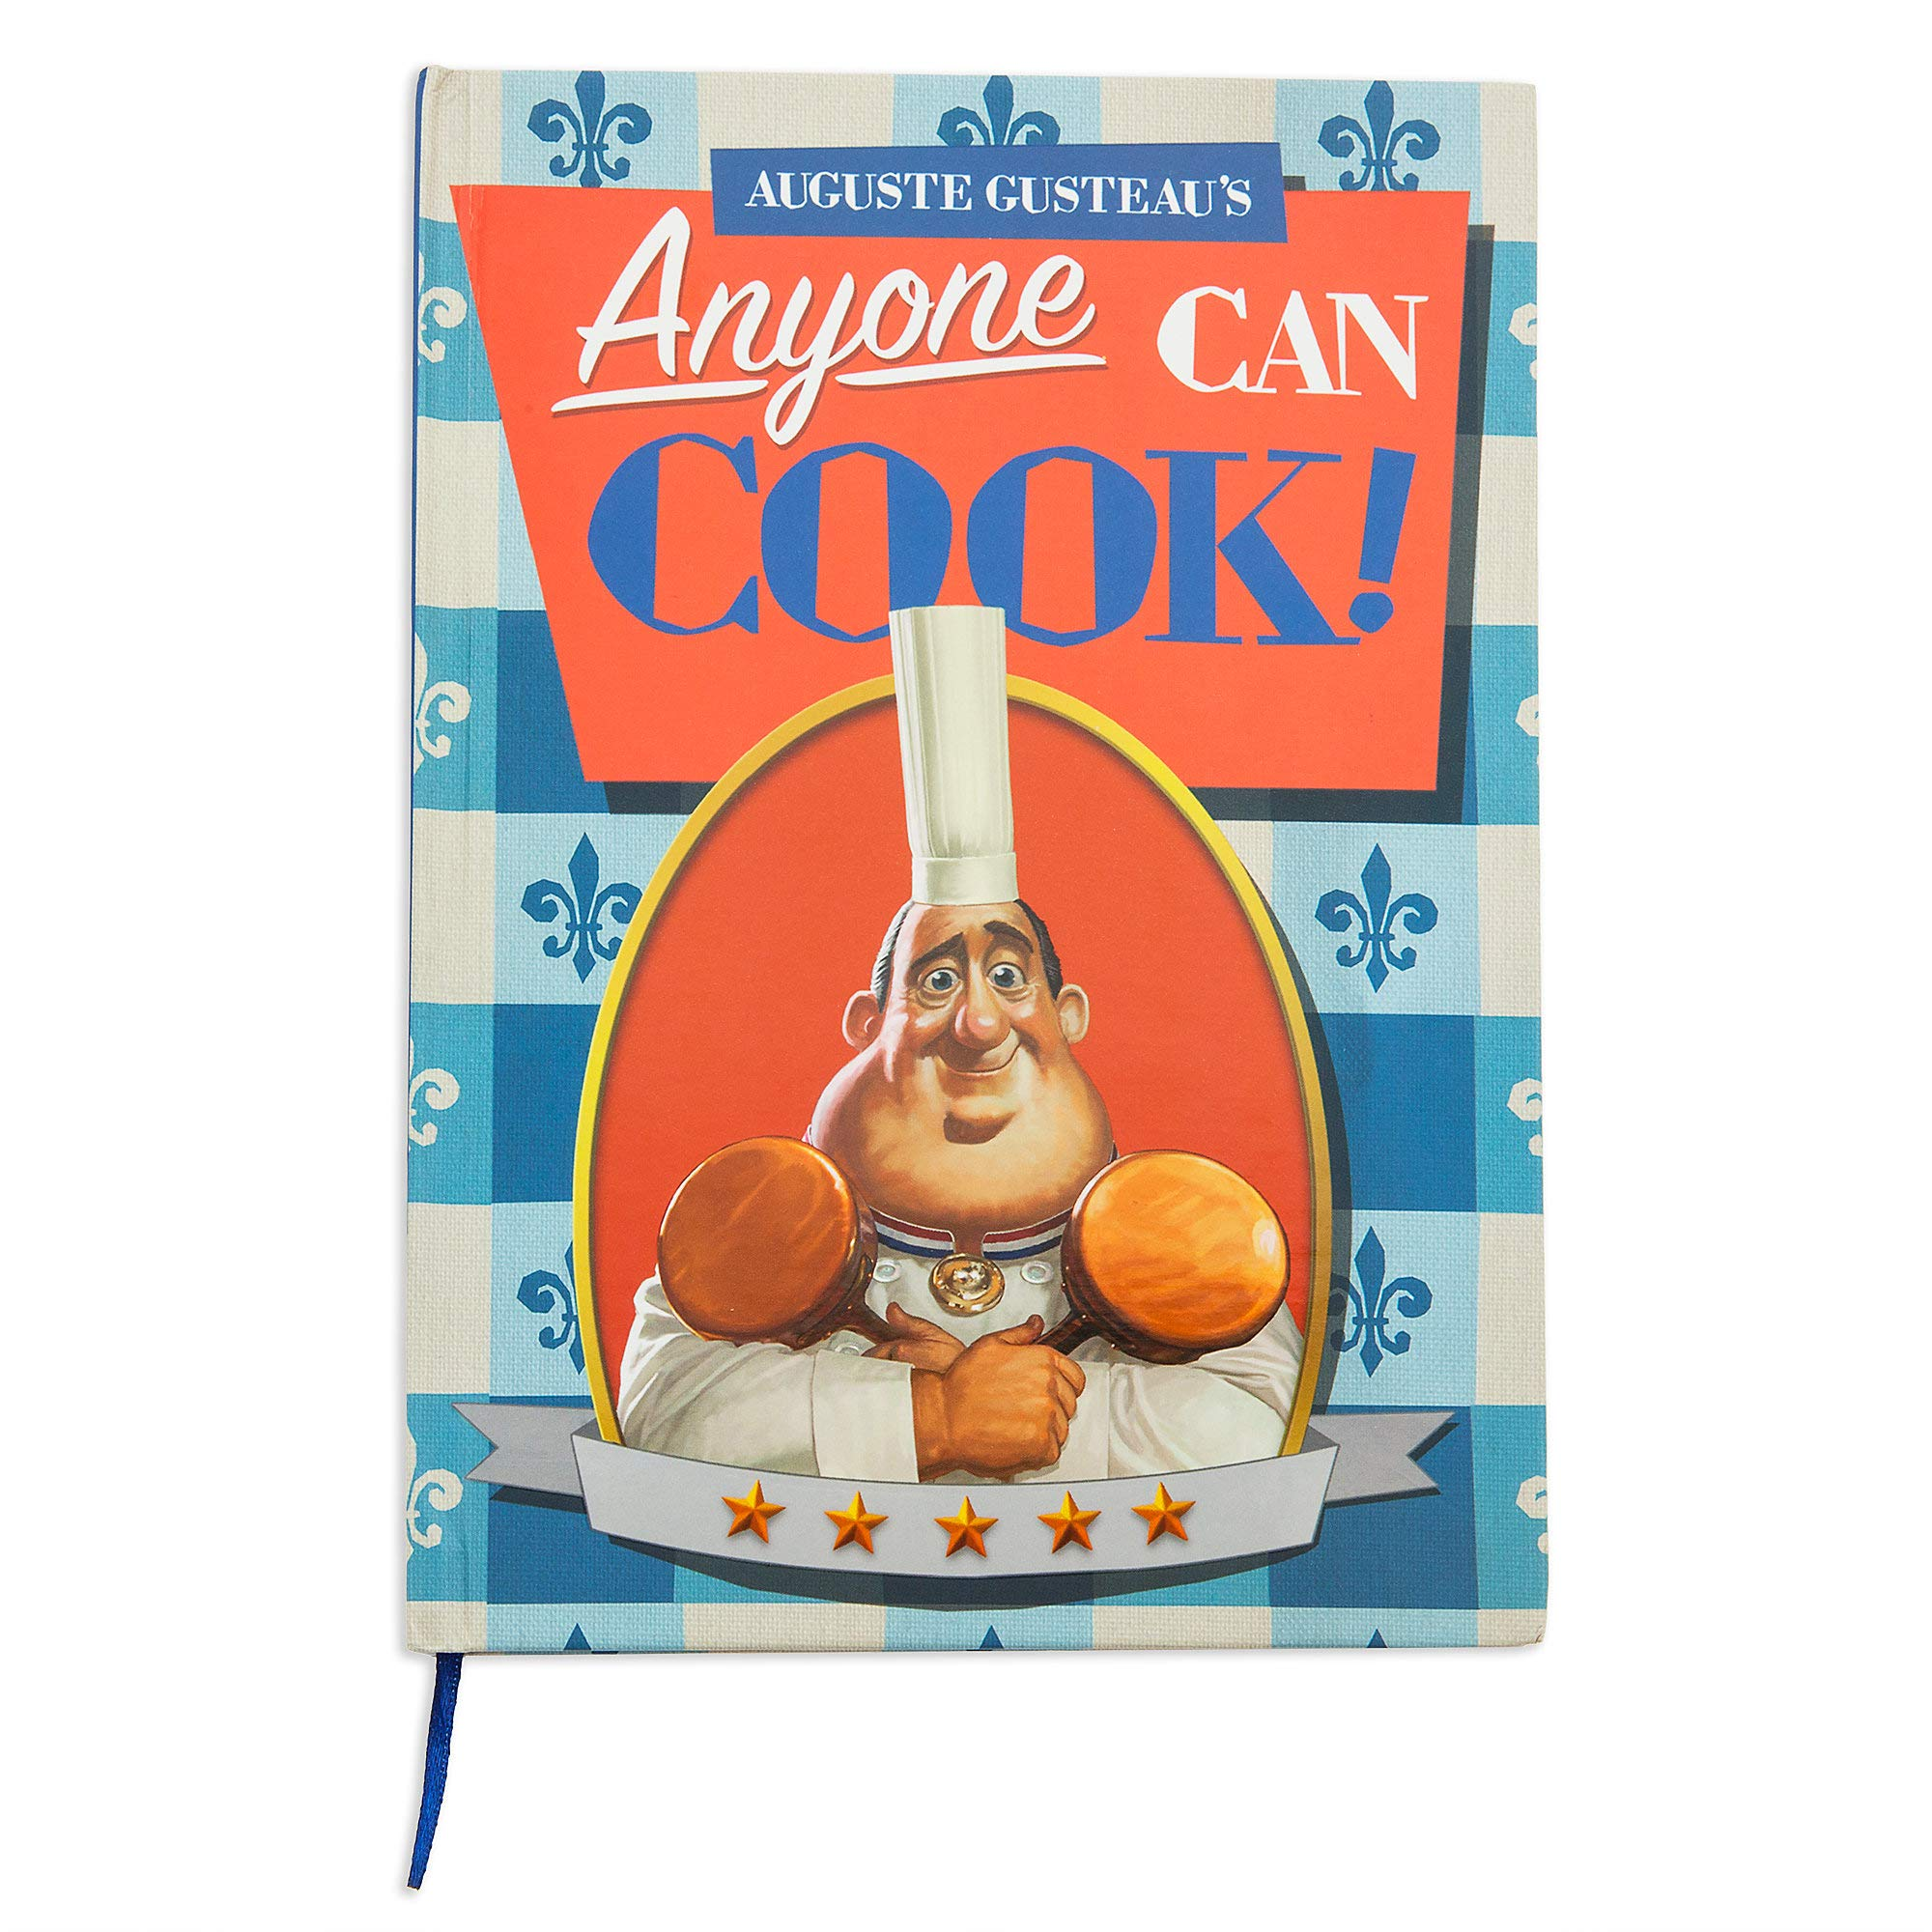 Disney Auguste Gusteau's ''Anyone Can Cook!'' Journal - Ratatouille No Color